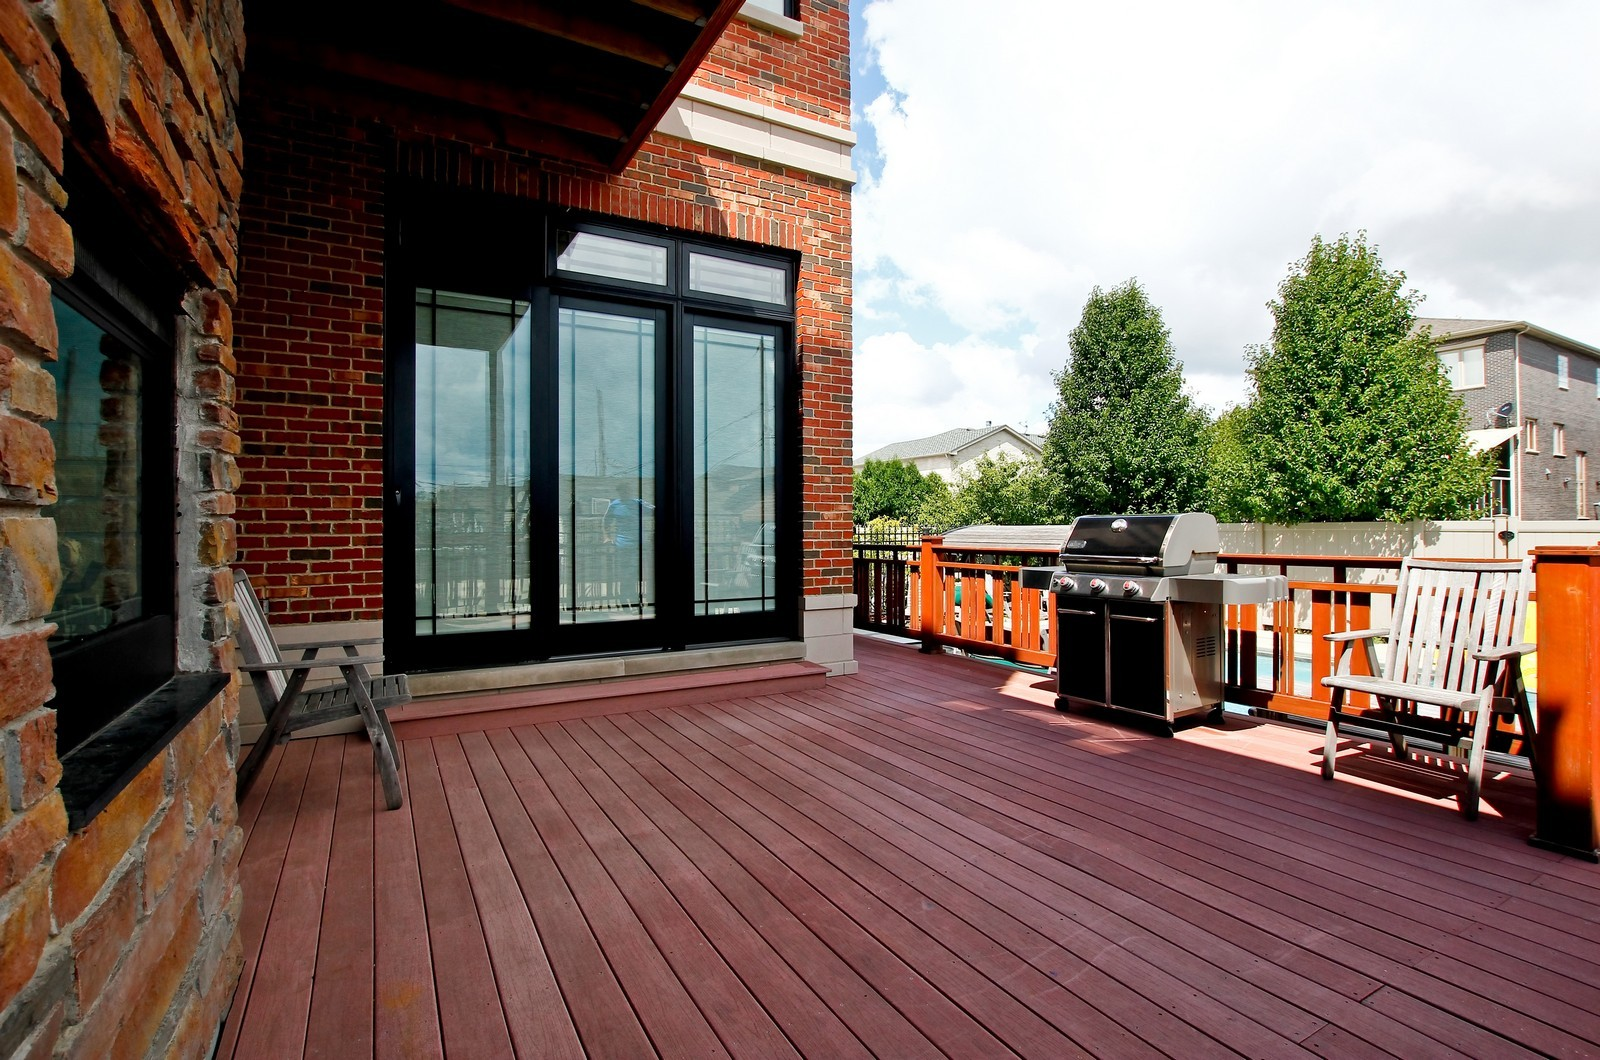 Real Estate Photography - 444 W. 38th Street, Chicago, IL, 60609 - Rear Deck